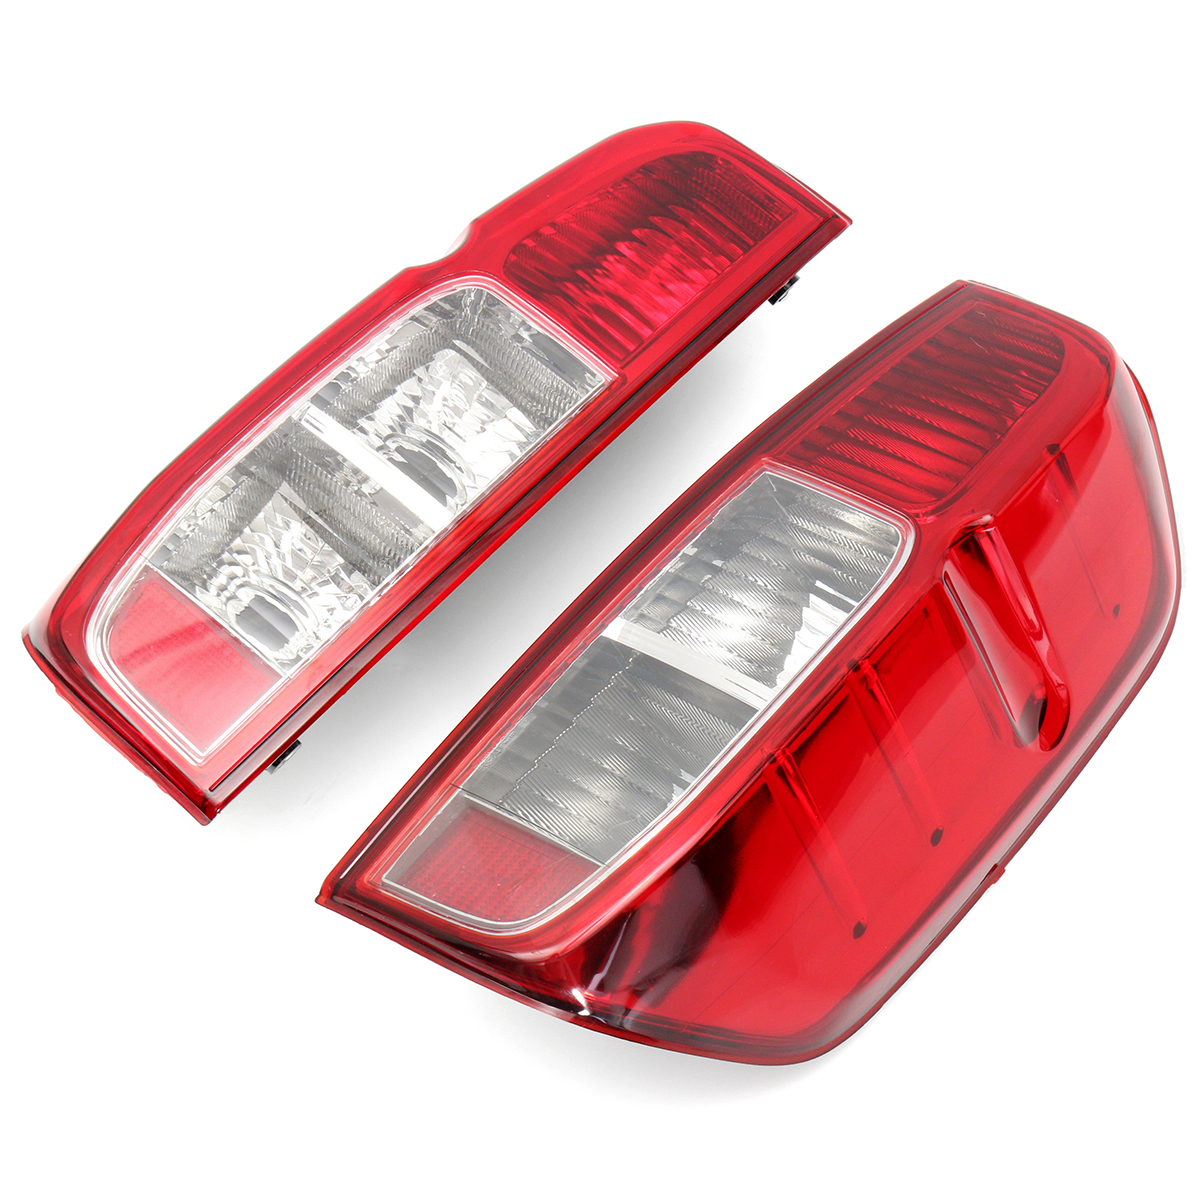 2Pcs LEFT/RIGHT Rear Tail Light Driver Passenger Side Lamp For Nissan NAVARA D40 2005-2015 1 pc outer rear tail light lamp taillamp taillight rh right side gr1a 51 170 for mazda 6 2005 2010 gg page 5